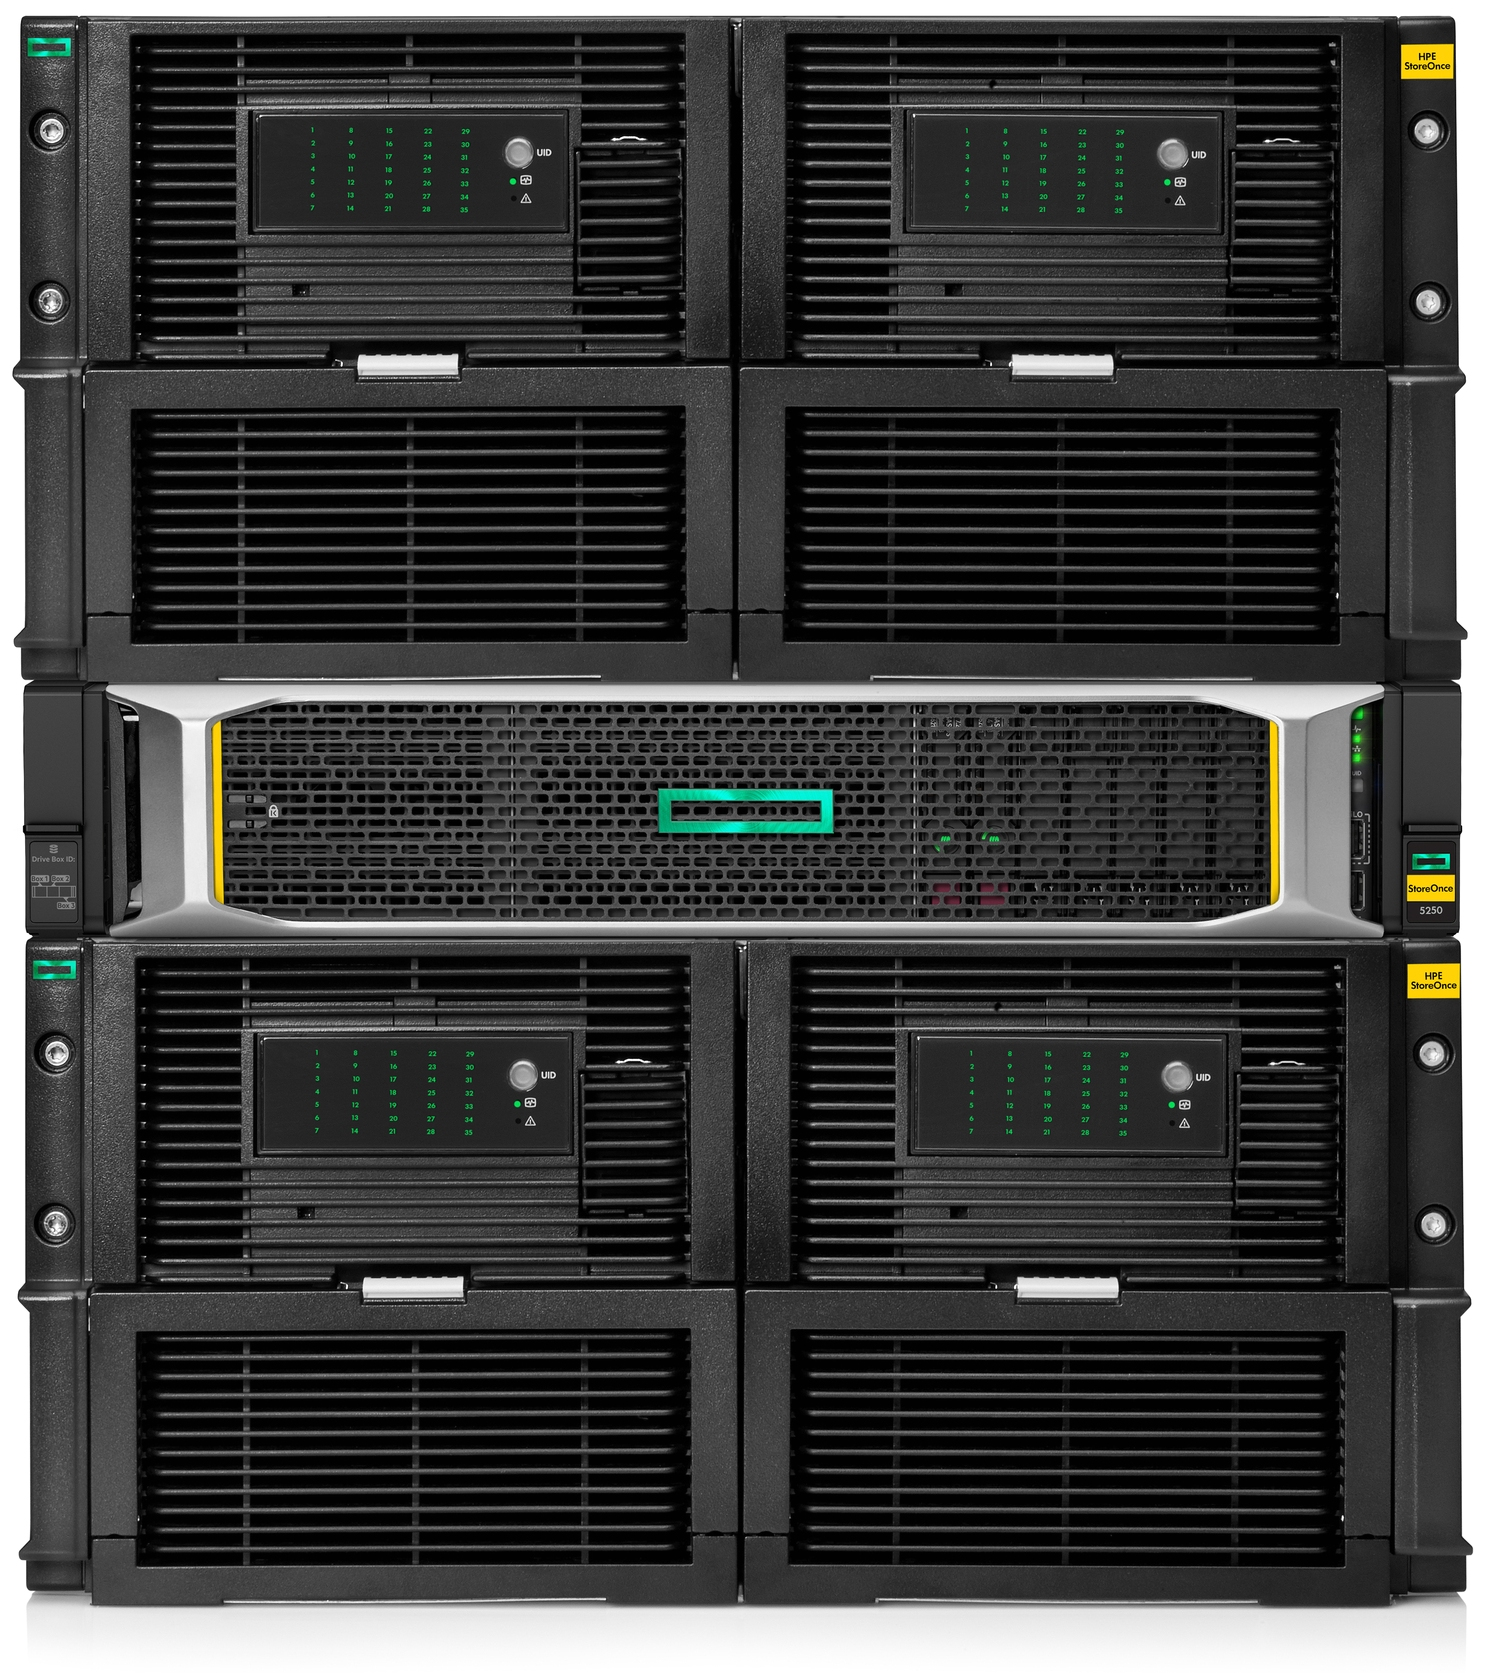 HPE StoreOnce Systems 5250 Front